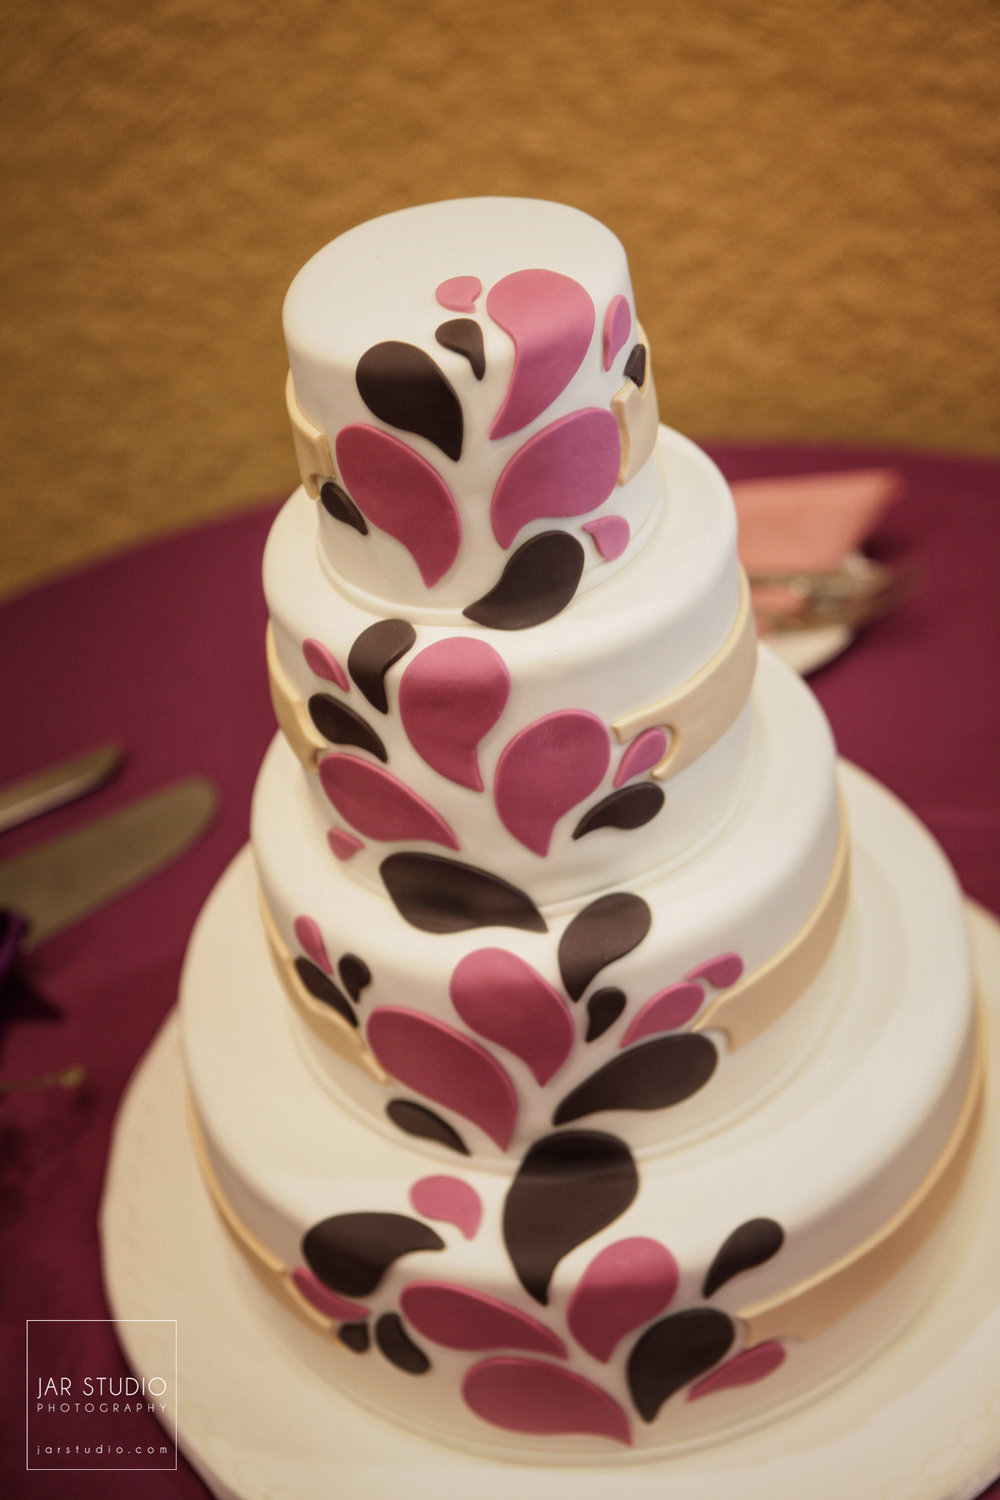 30-orlando-destination-weddings-cake-photography-jarstudio.JPG